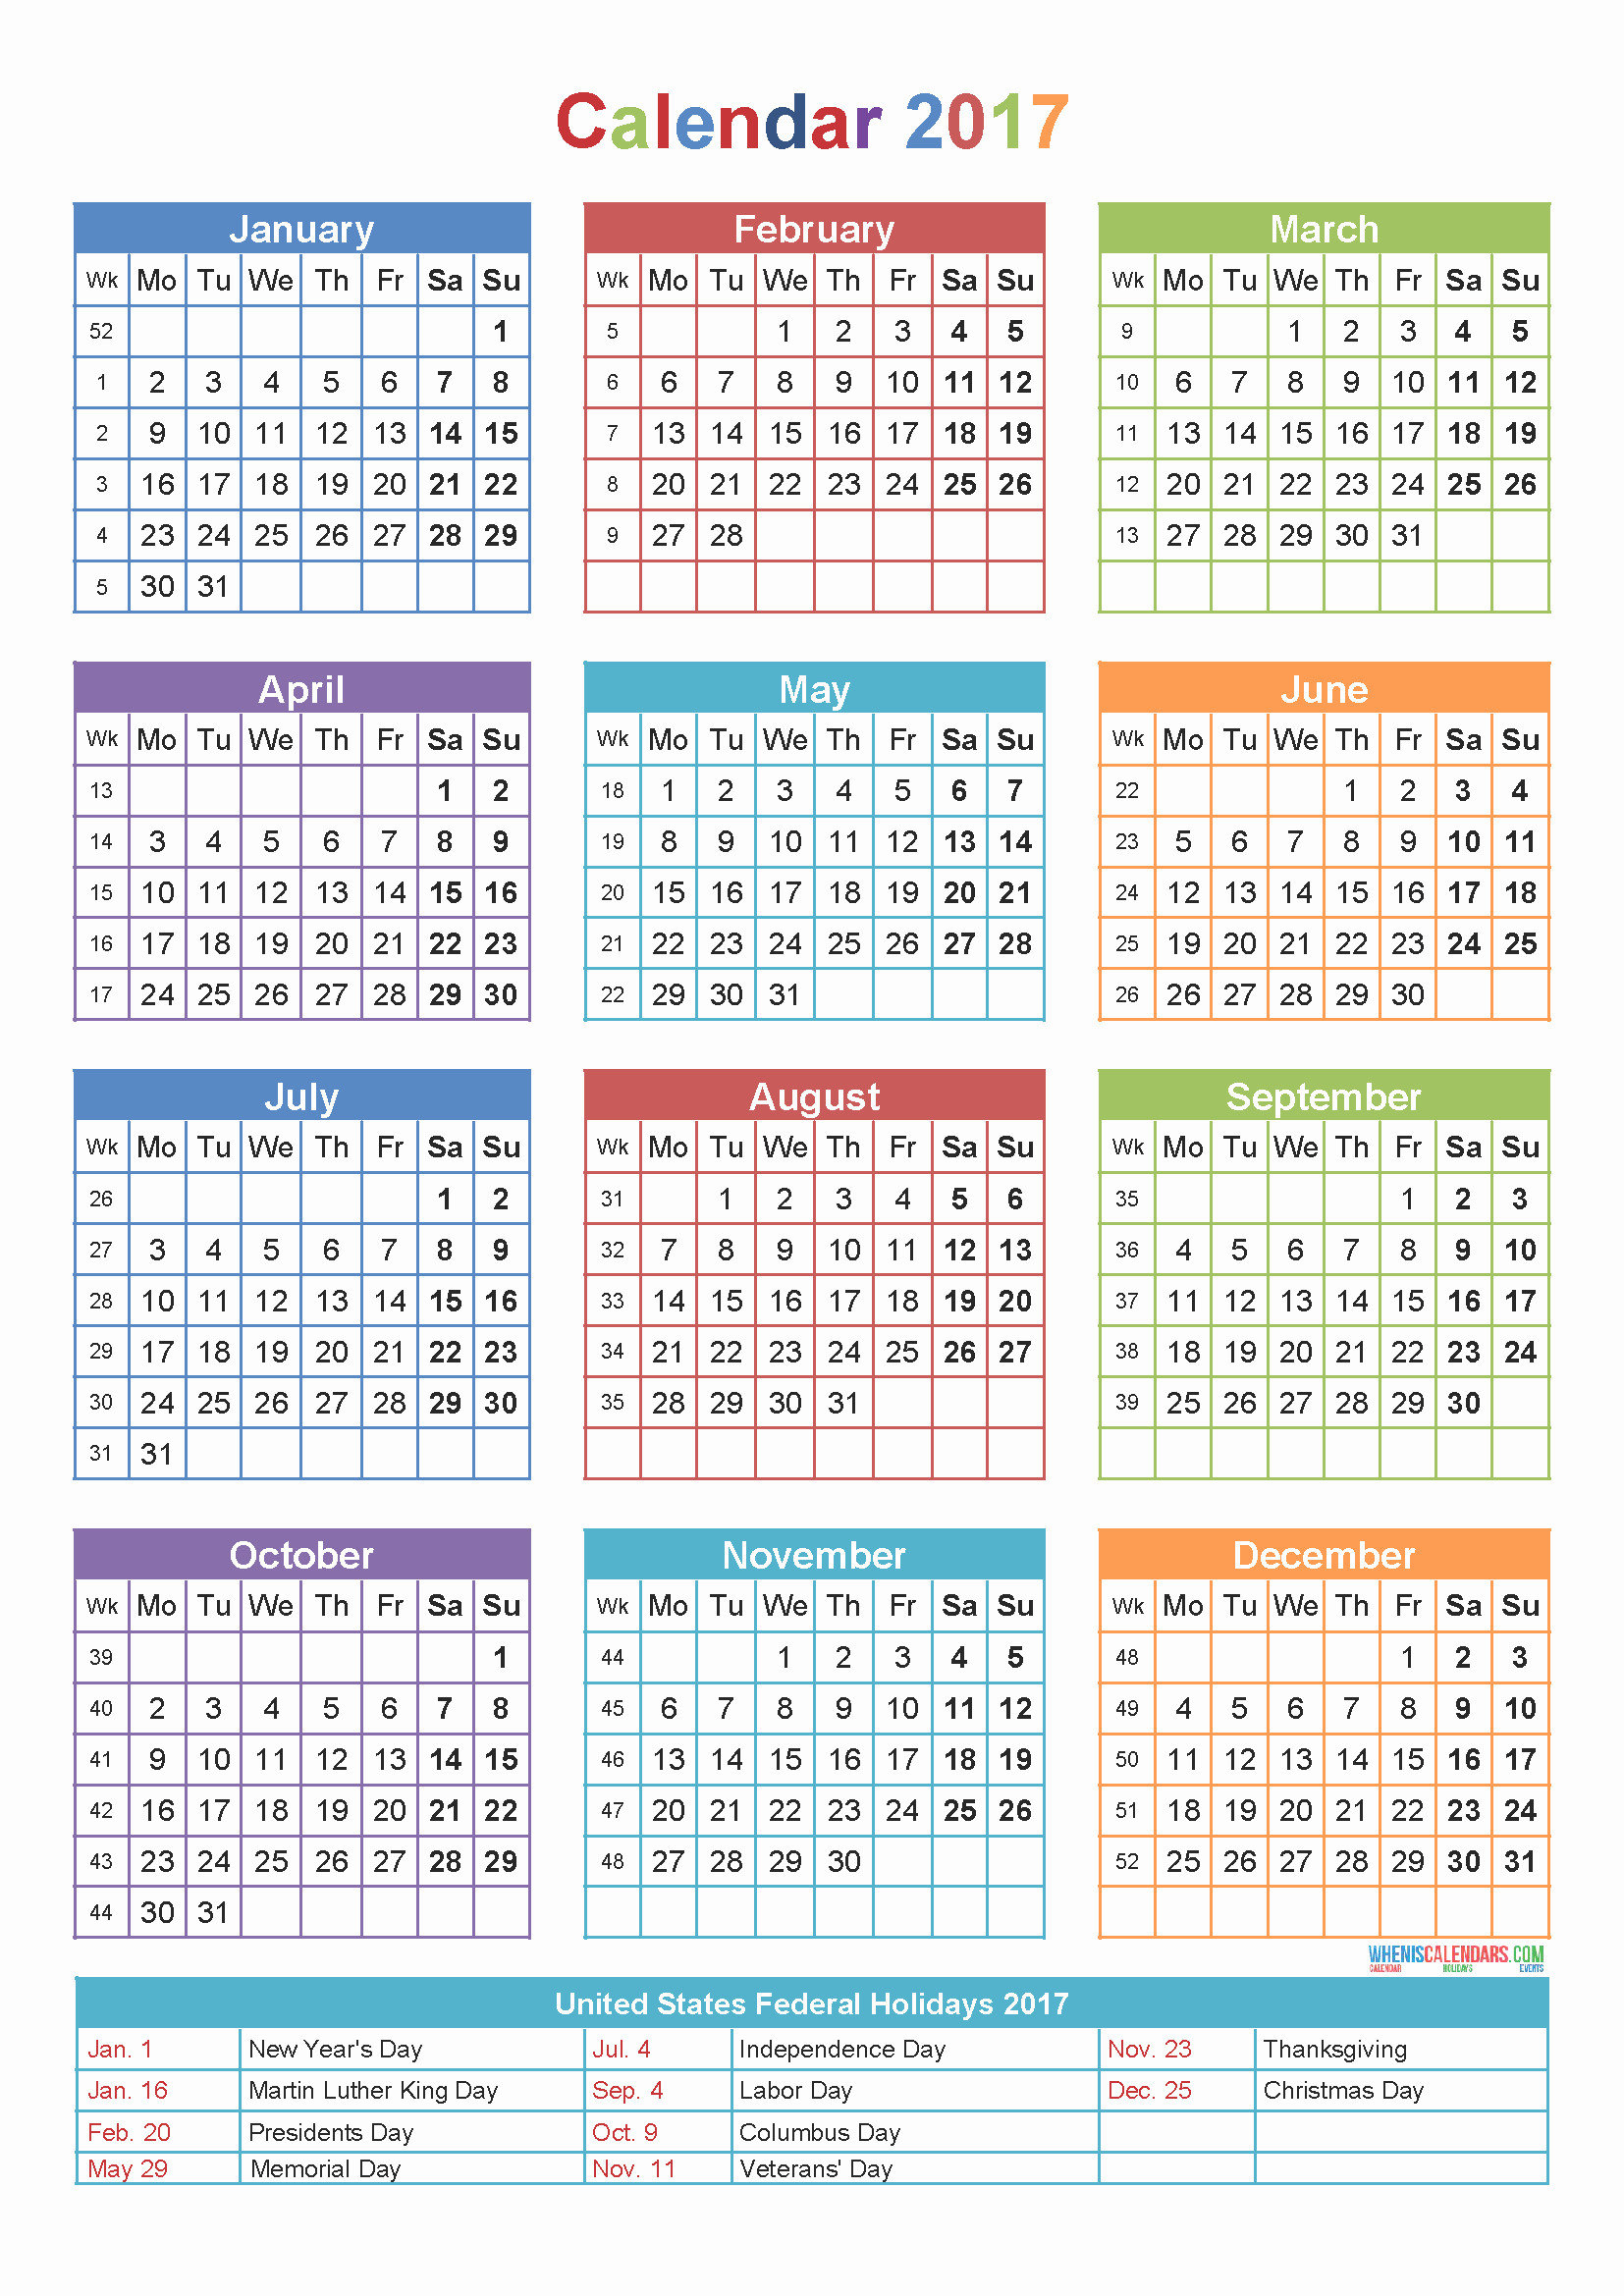 Free Printable Annual Calendar 2017 Inspirational 2017 Printable Yearly Calendar with Holidays